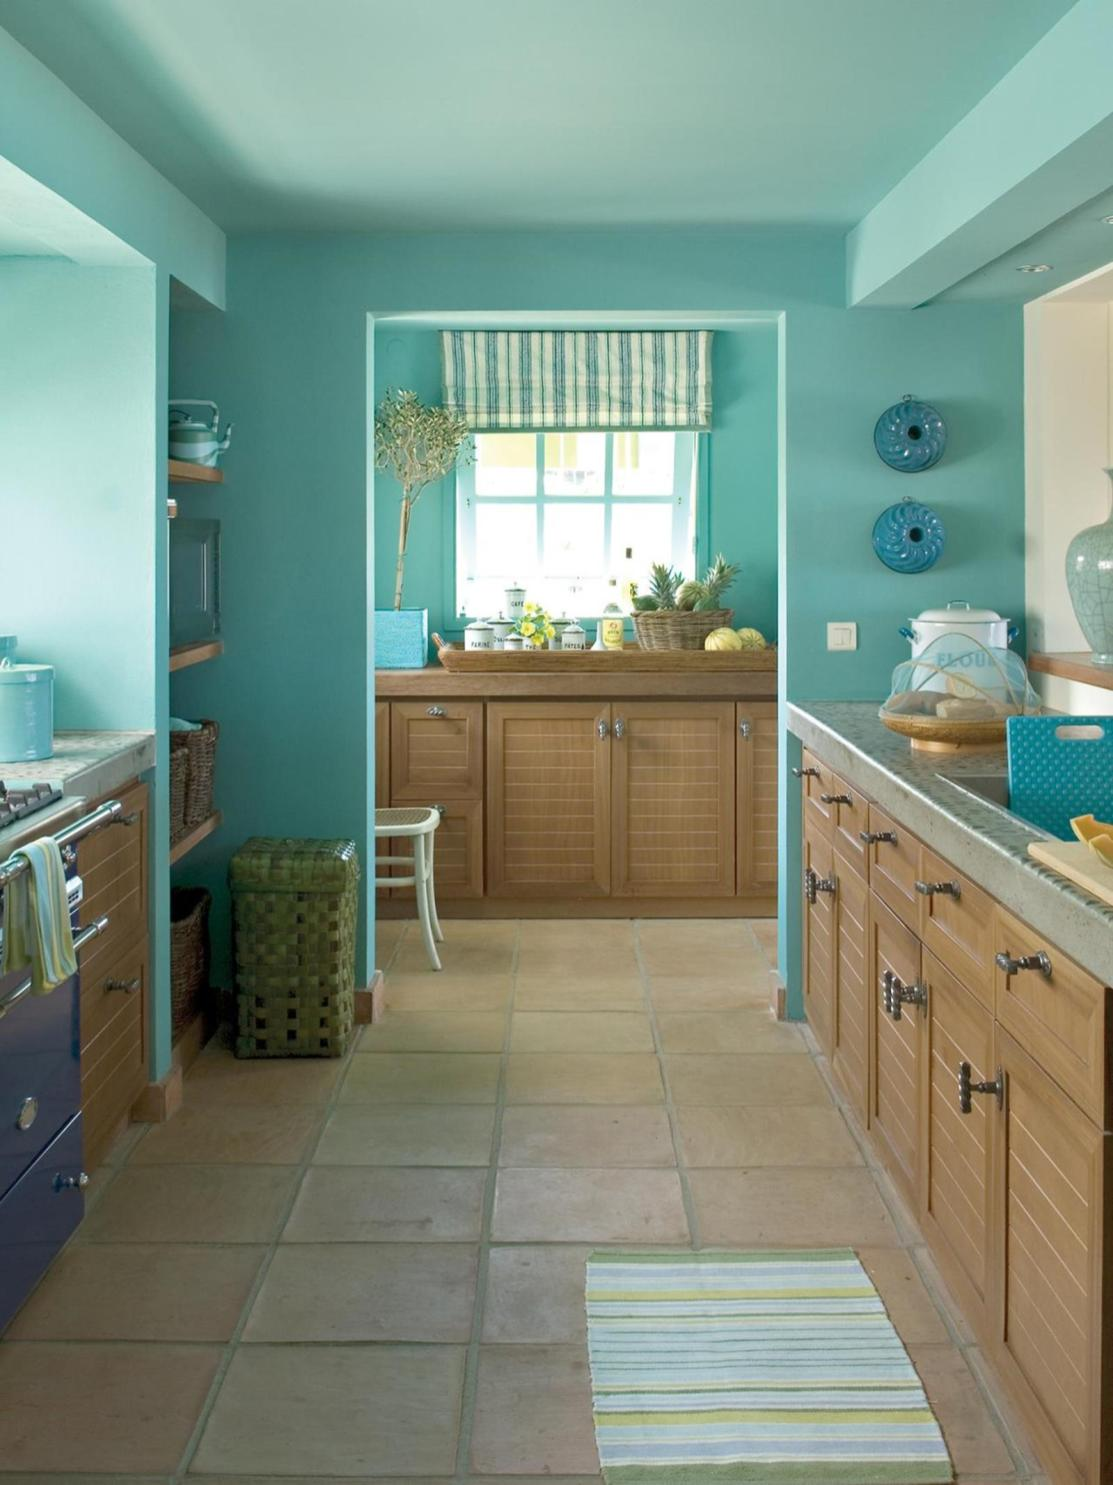 Projects to Make Kitchen More Neat and Beautiful 15